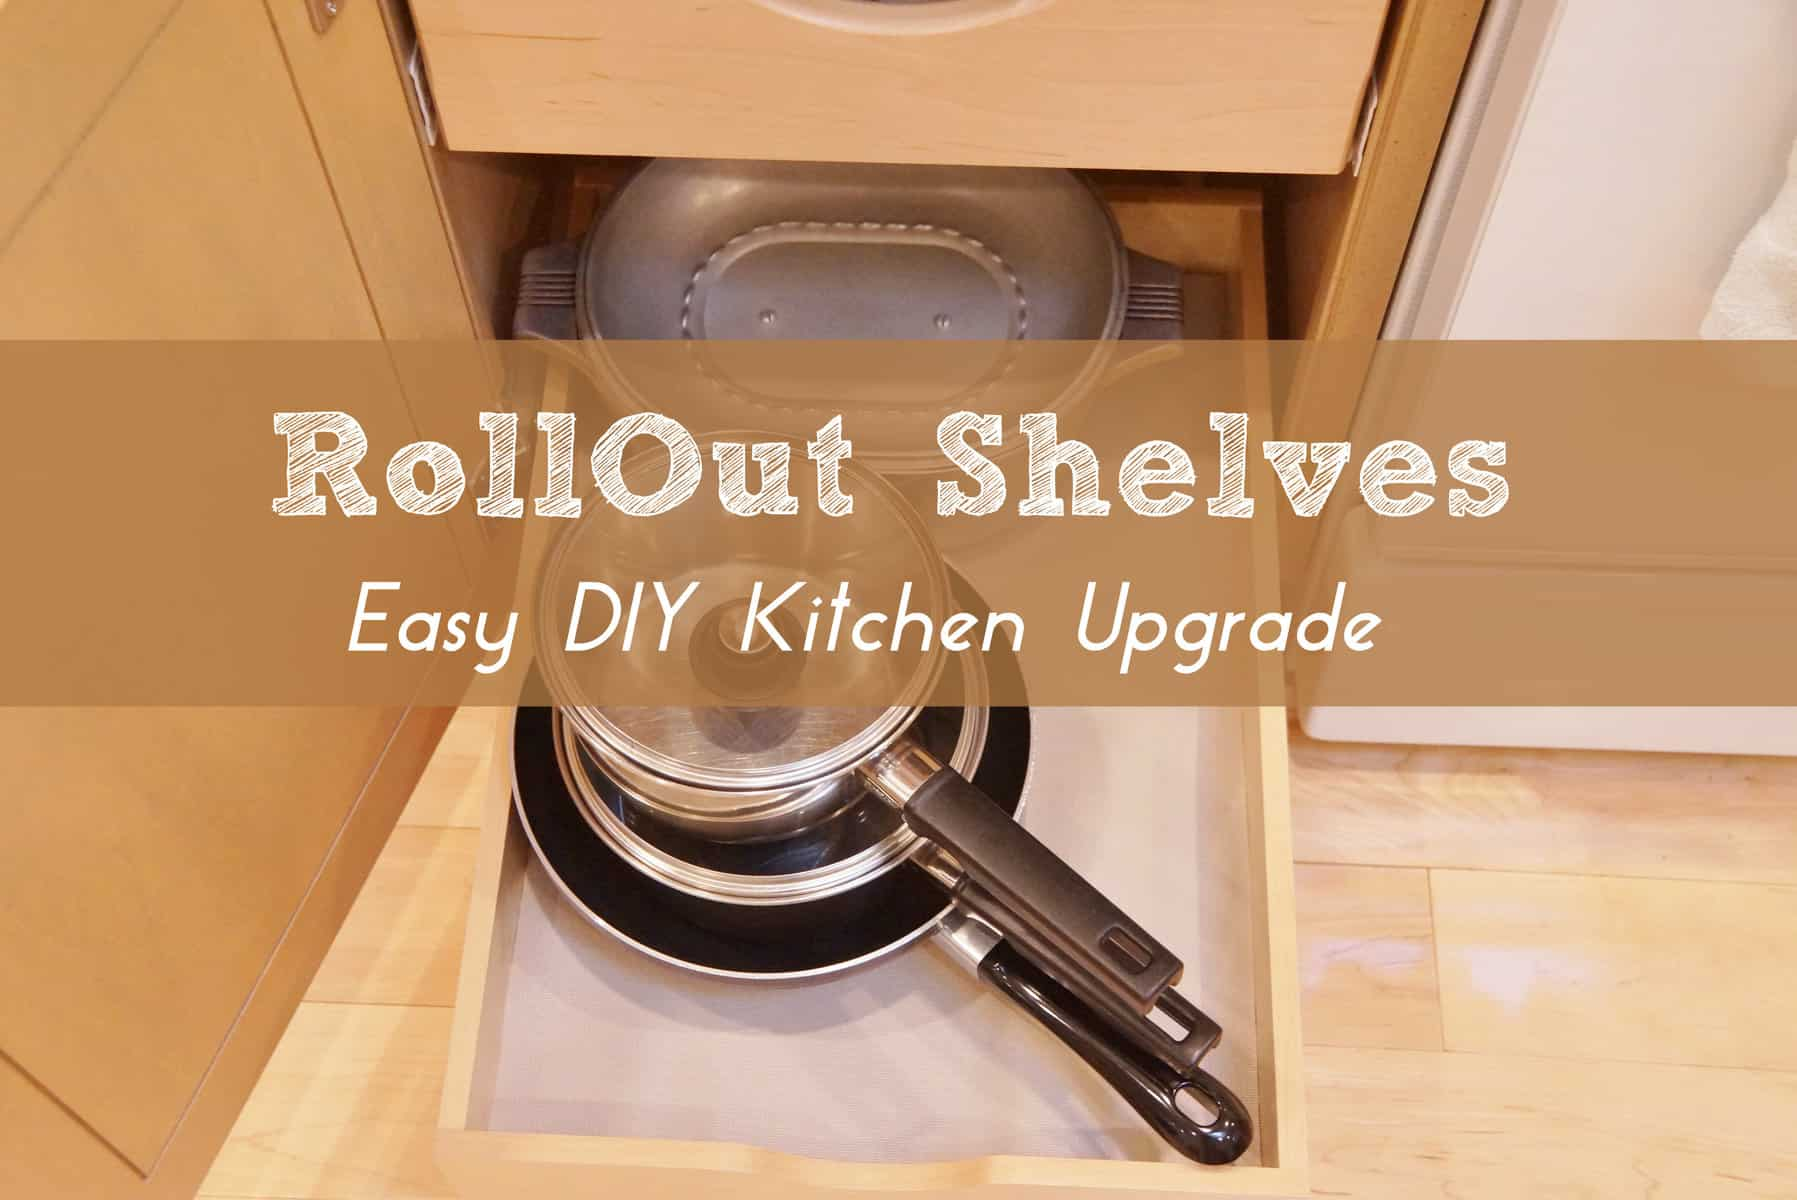 Installing Pull Out Shelves in Kitchen Cabinets